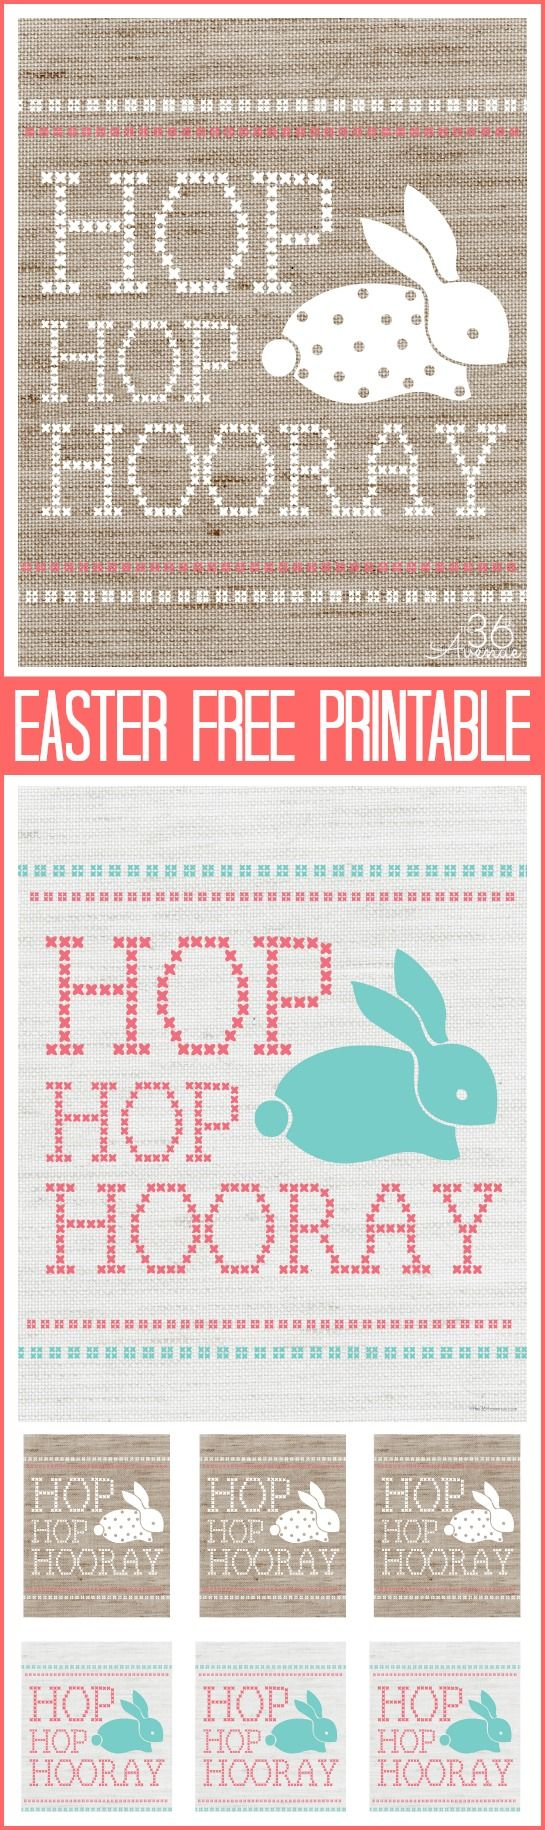 Adorable FREE Easter Printables @The 36th Avenue .com #easter #printableIdeas, Easter Free Printables Jpg, Spring Printables, 36Th Avenue, Holiday Cookies, Easter Bunnies, Easter Printables, The36Thavenue Com, Diy Projects